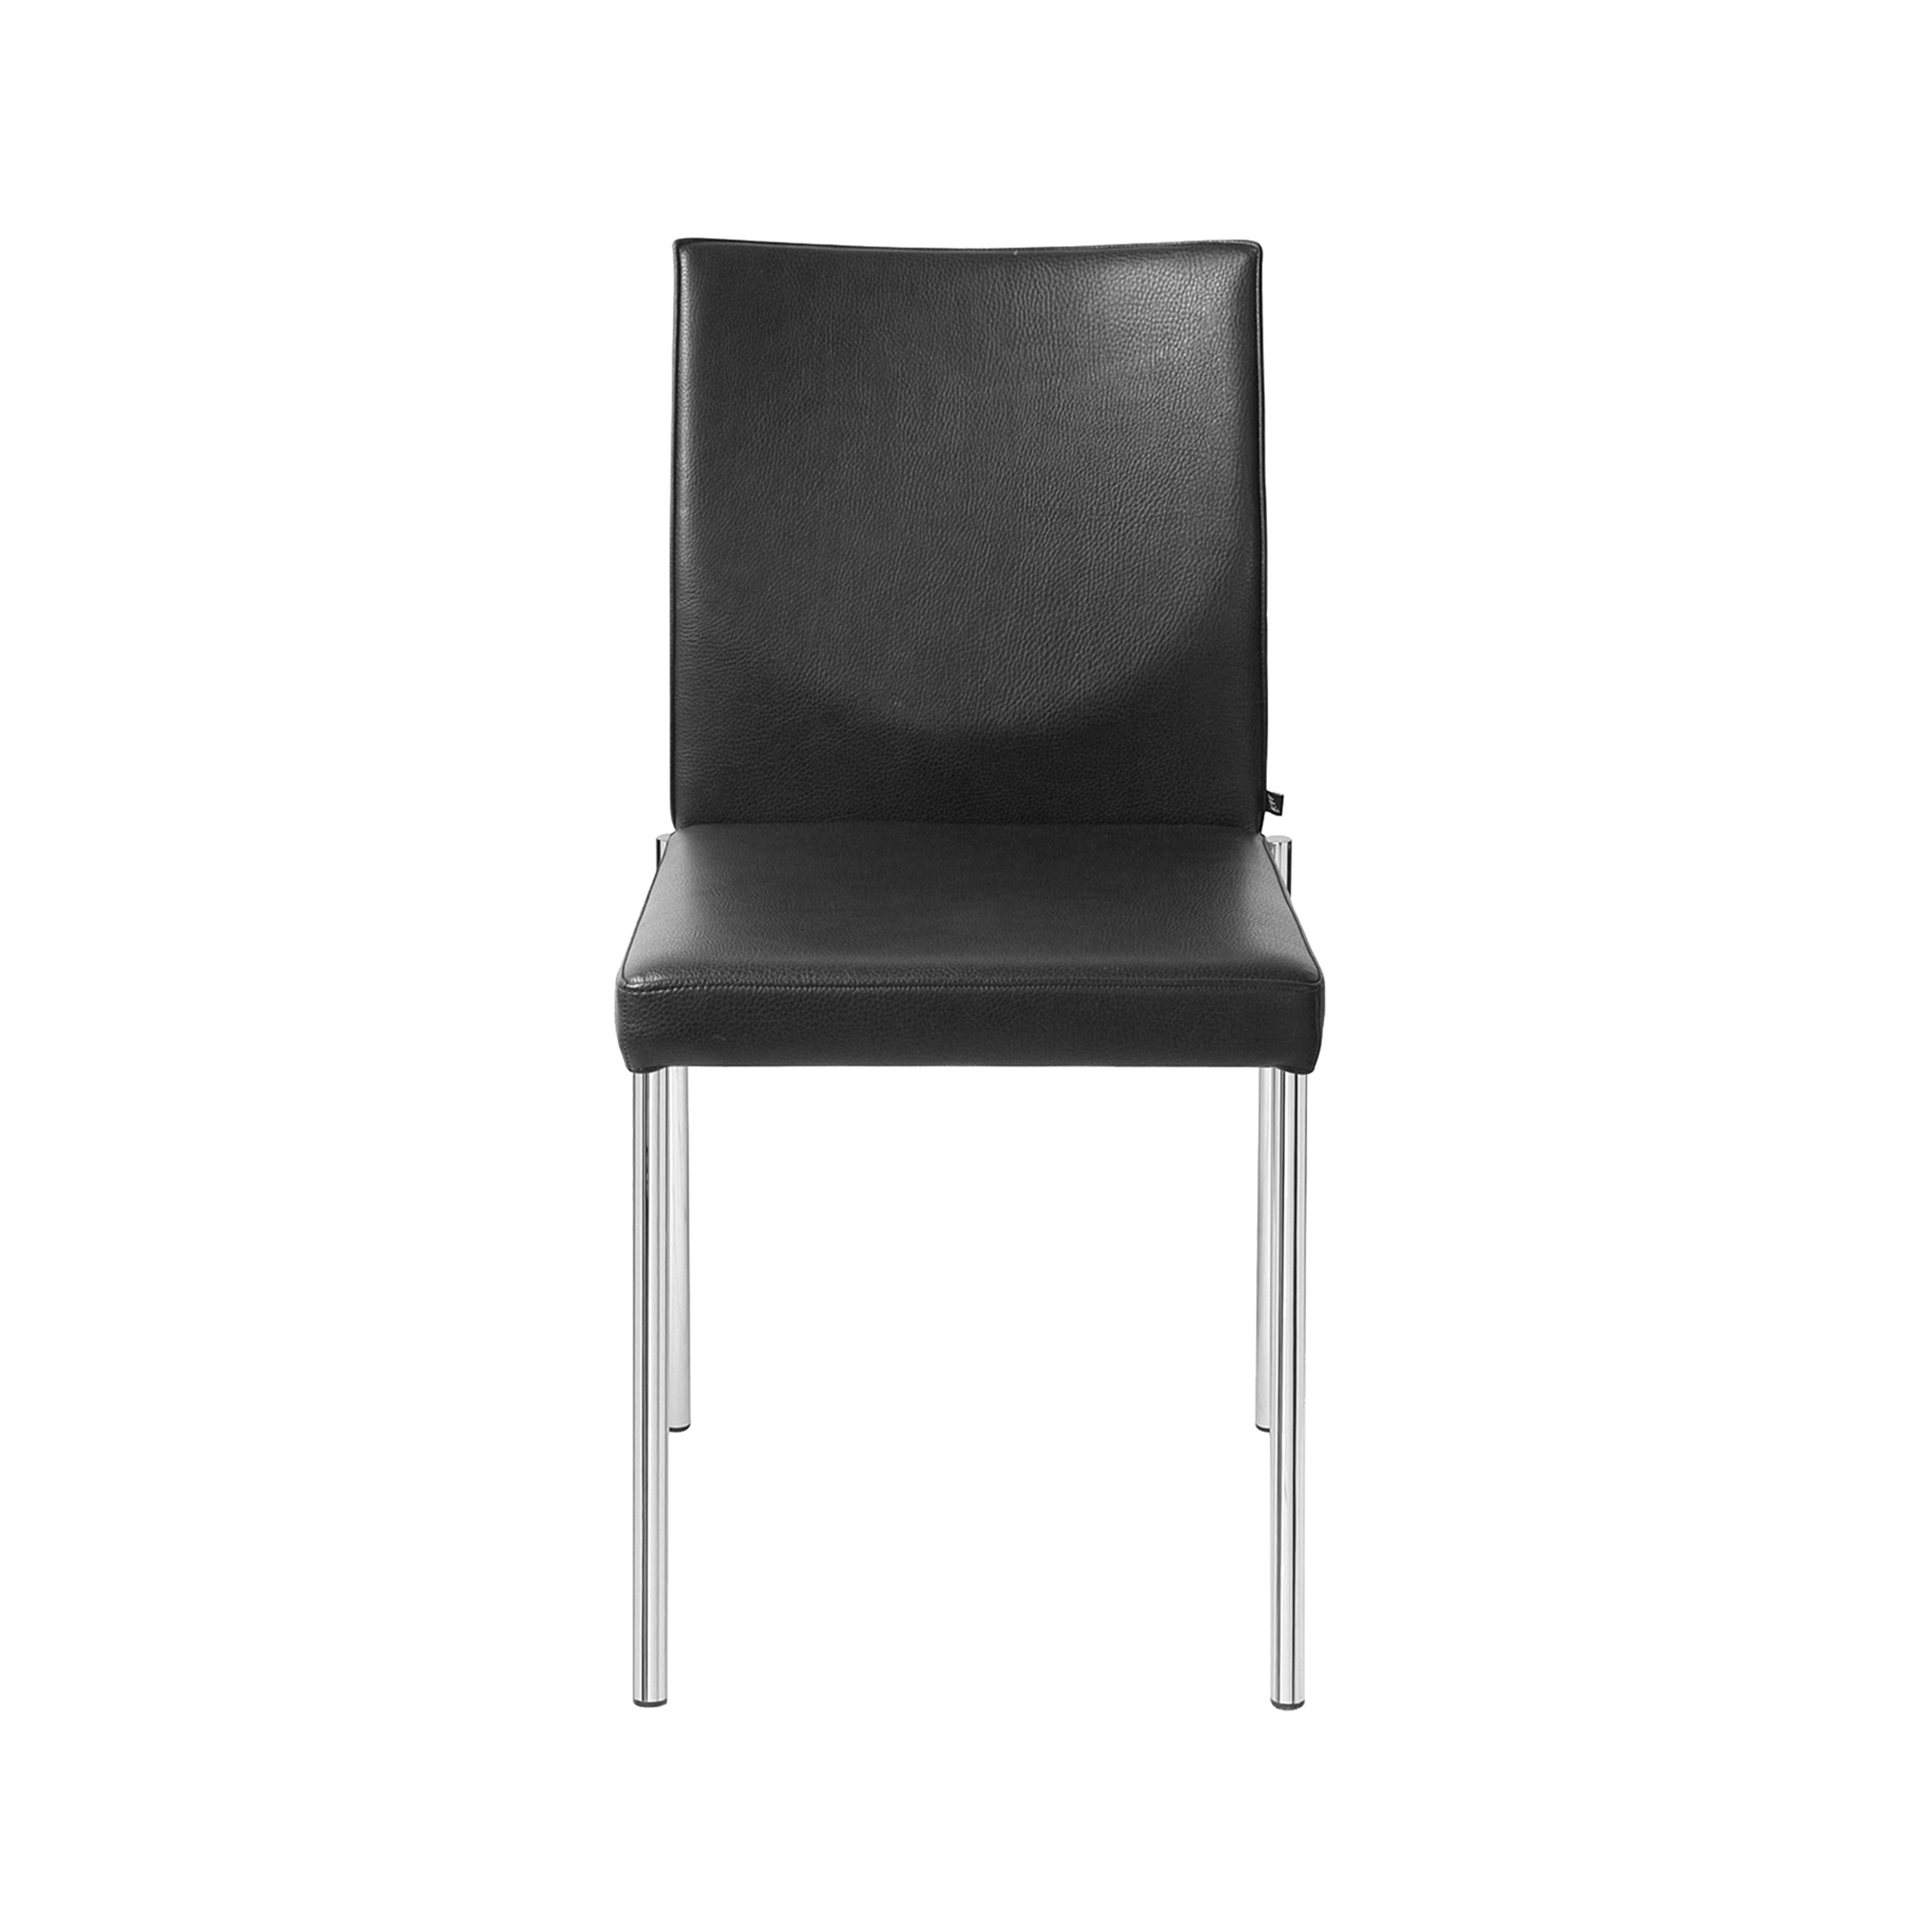 Glooh Chair Without Armrests in Black Leather by KFF